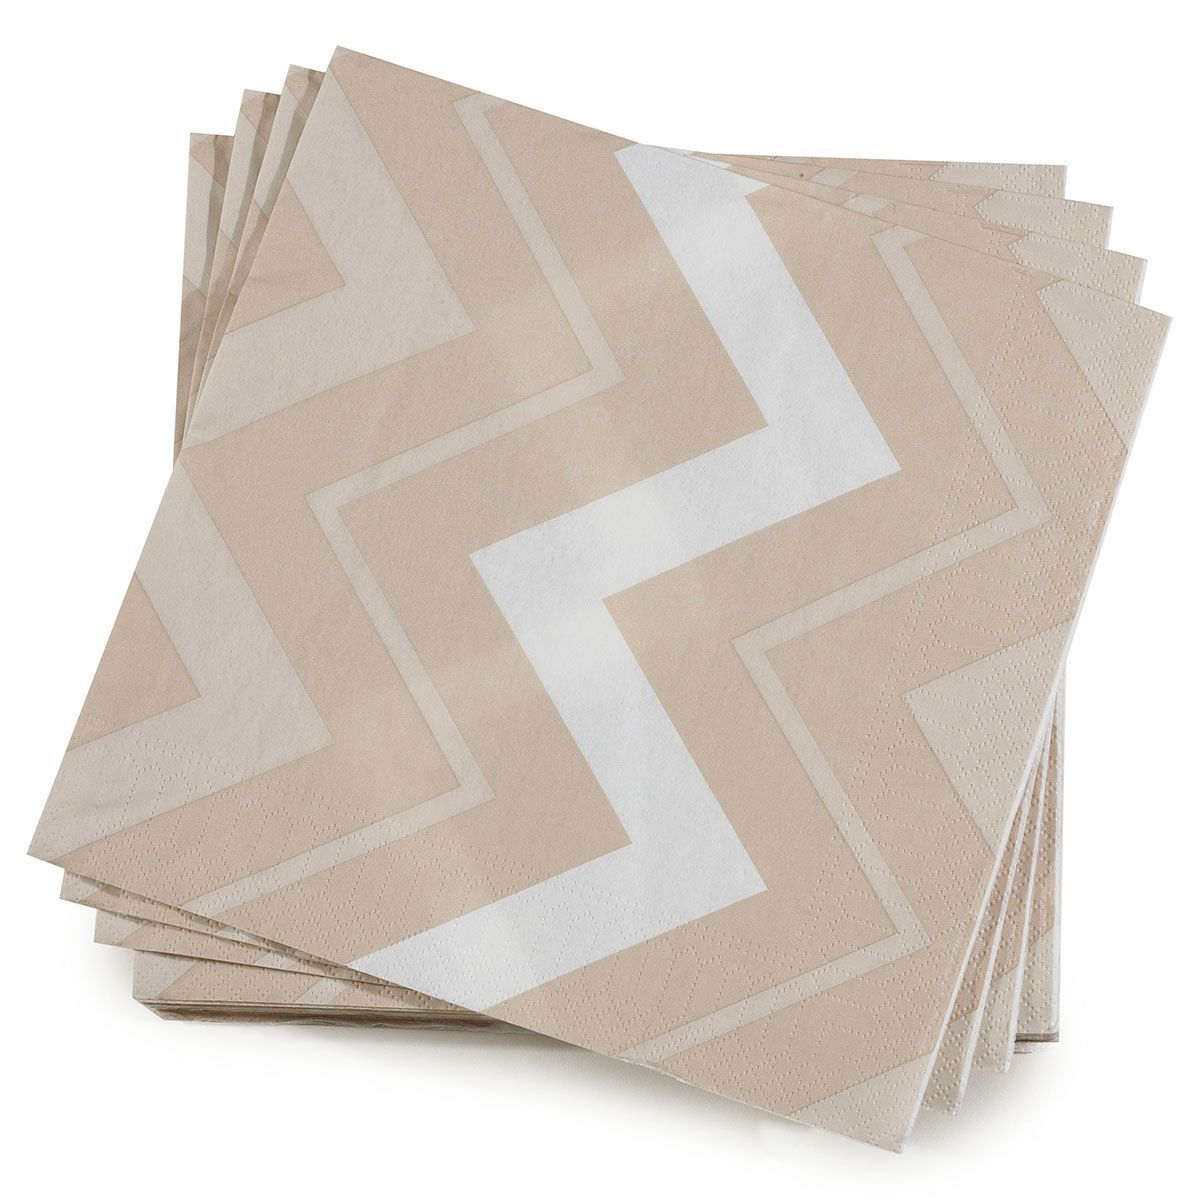 Add style to any table with the Dune Color Rock Napkins by Le Jacquard Français. The soft and absorbent paper napkins feature a rhythmic geometric pattern with a soft and neutral color palette. Perfect for every day use or special occasions. Complete the collection with the coordinating Dune Color Rock Table Linens are also available. Napkin size: 16